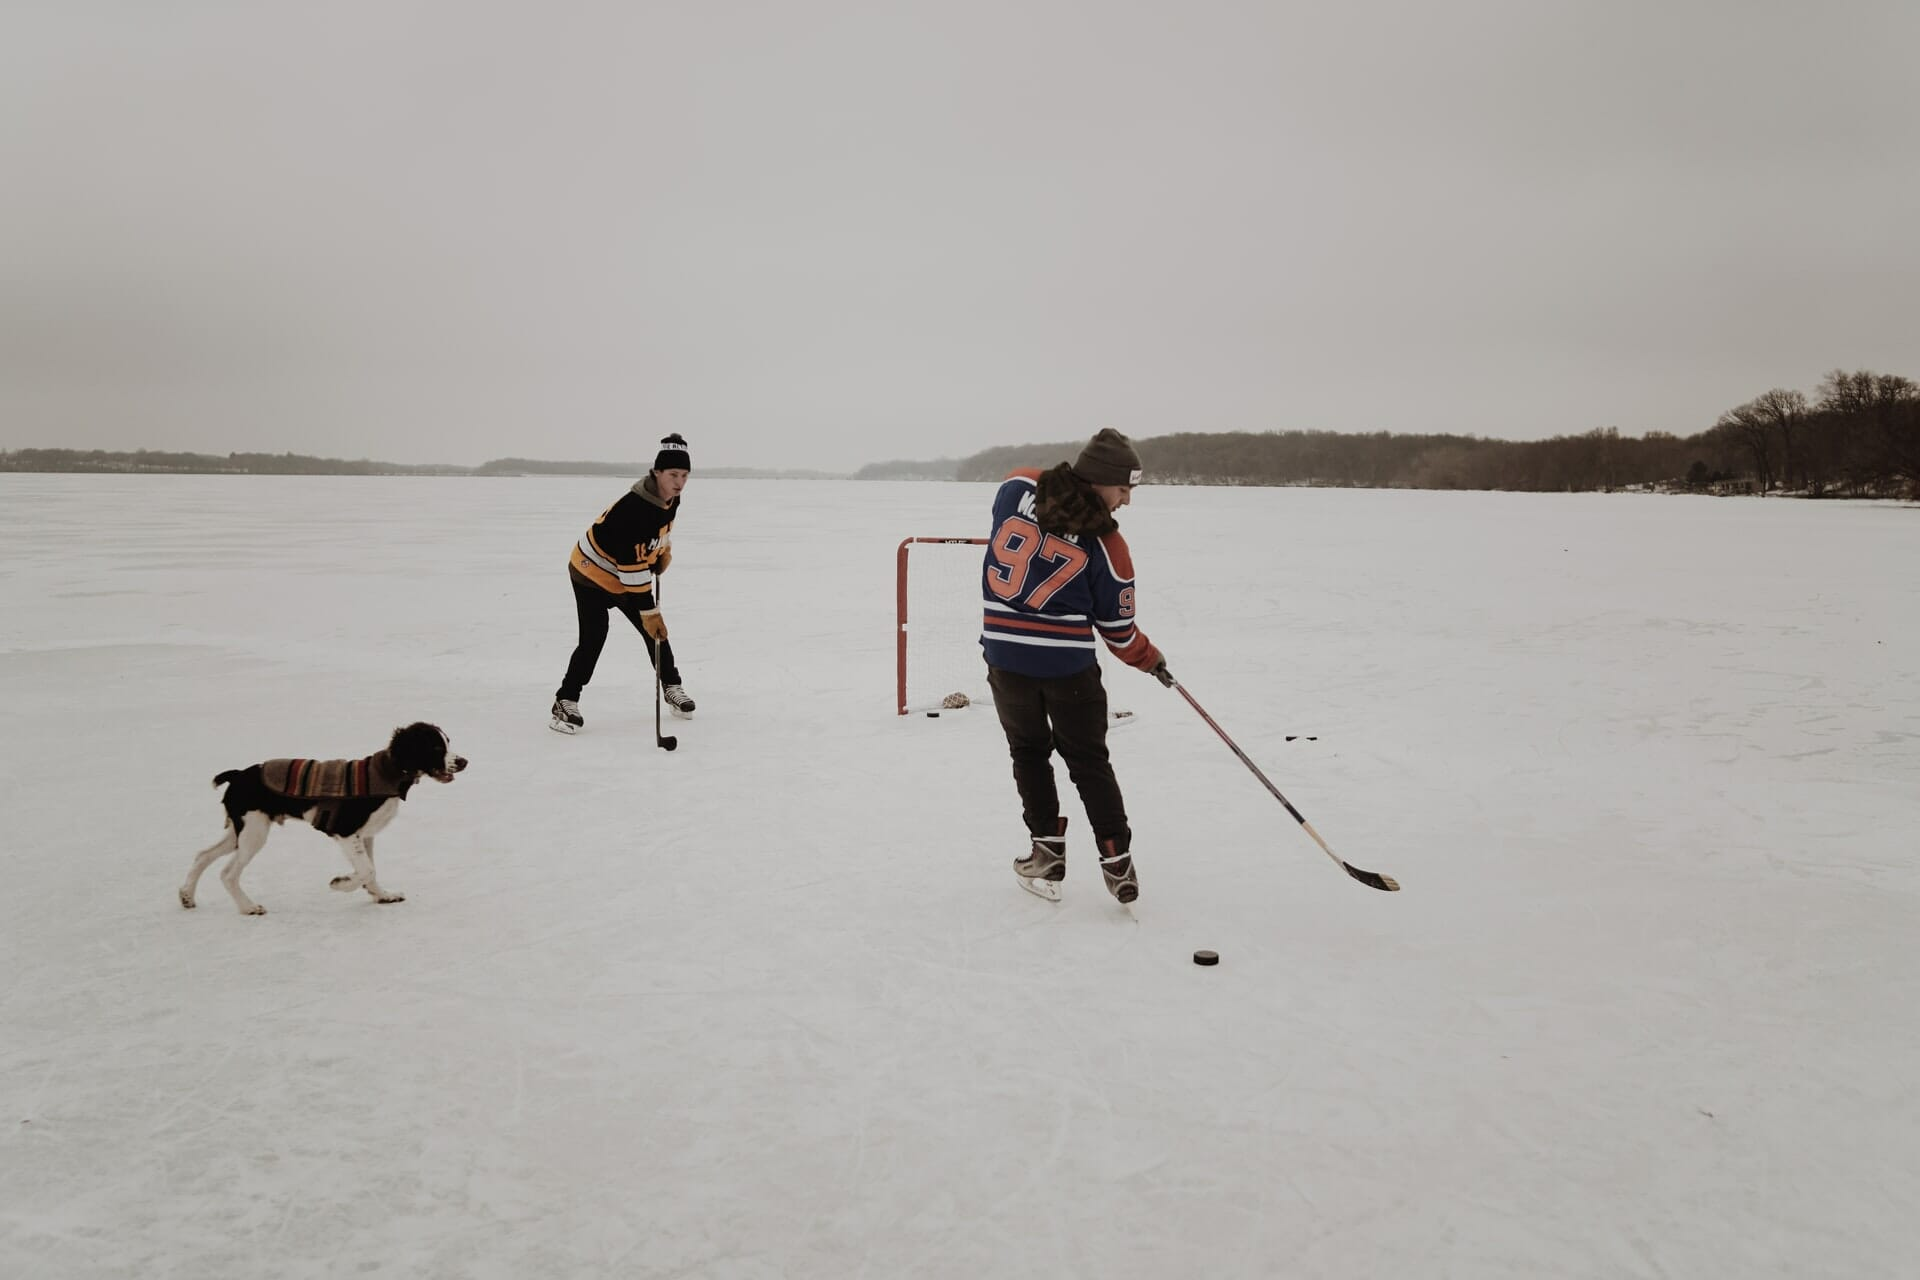 Two people playing hockey on a lake, with dog standing beside them.